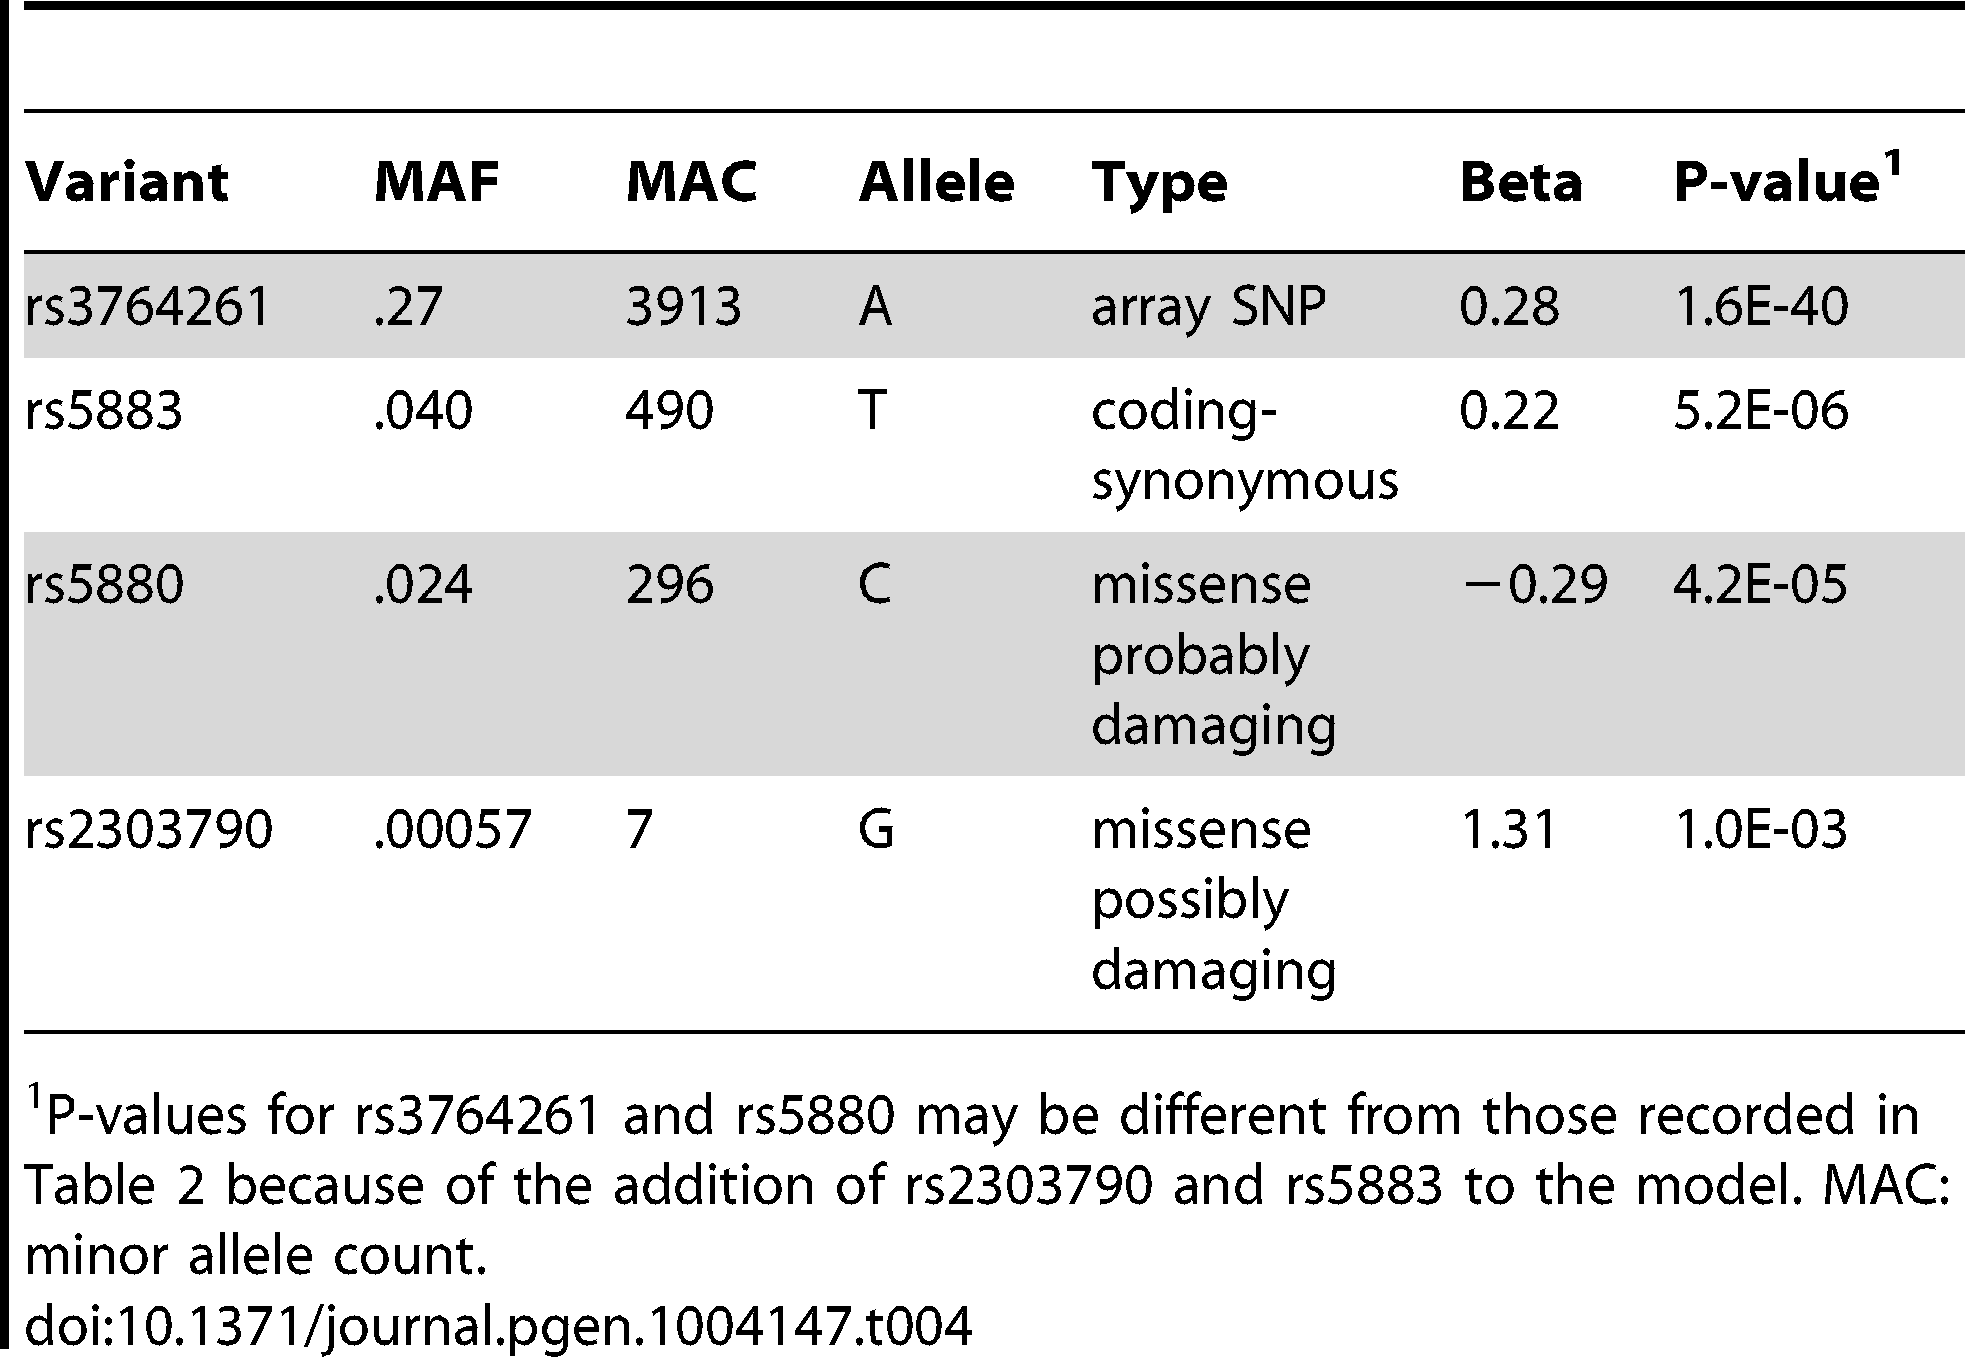 Rare and common variants contribute to the association signal to HDL-C in gene <i>CETP</i>.